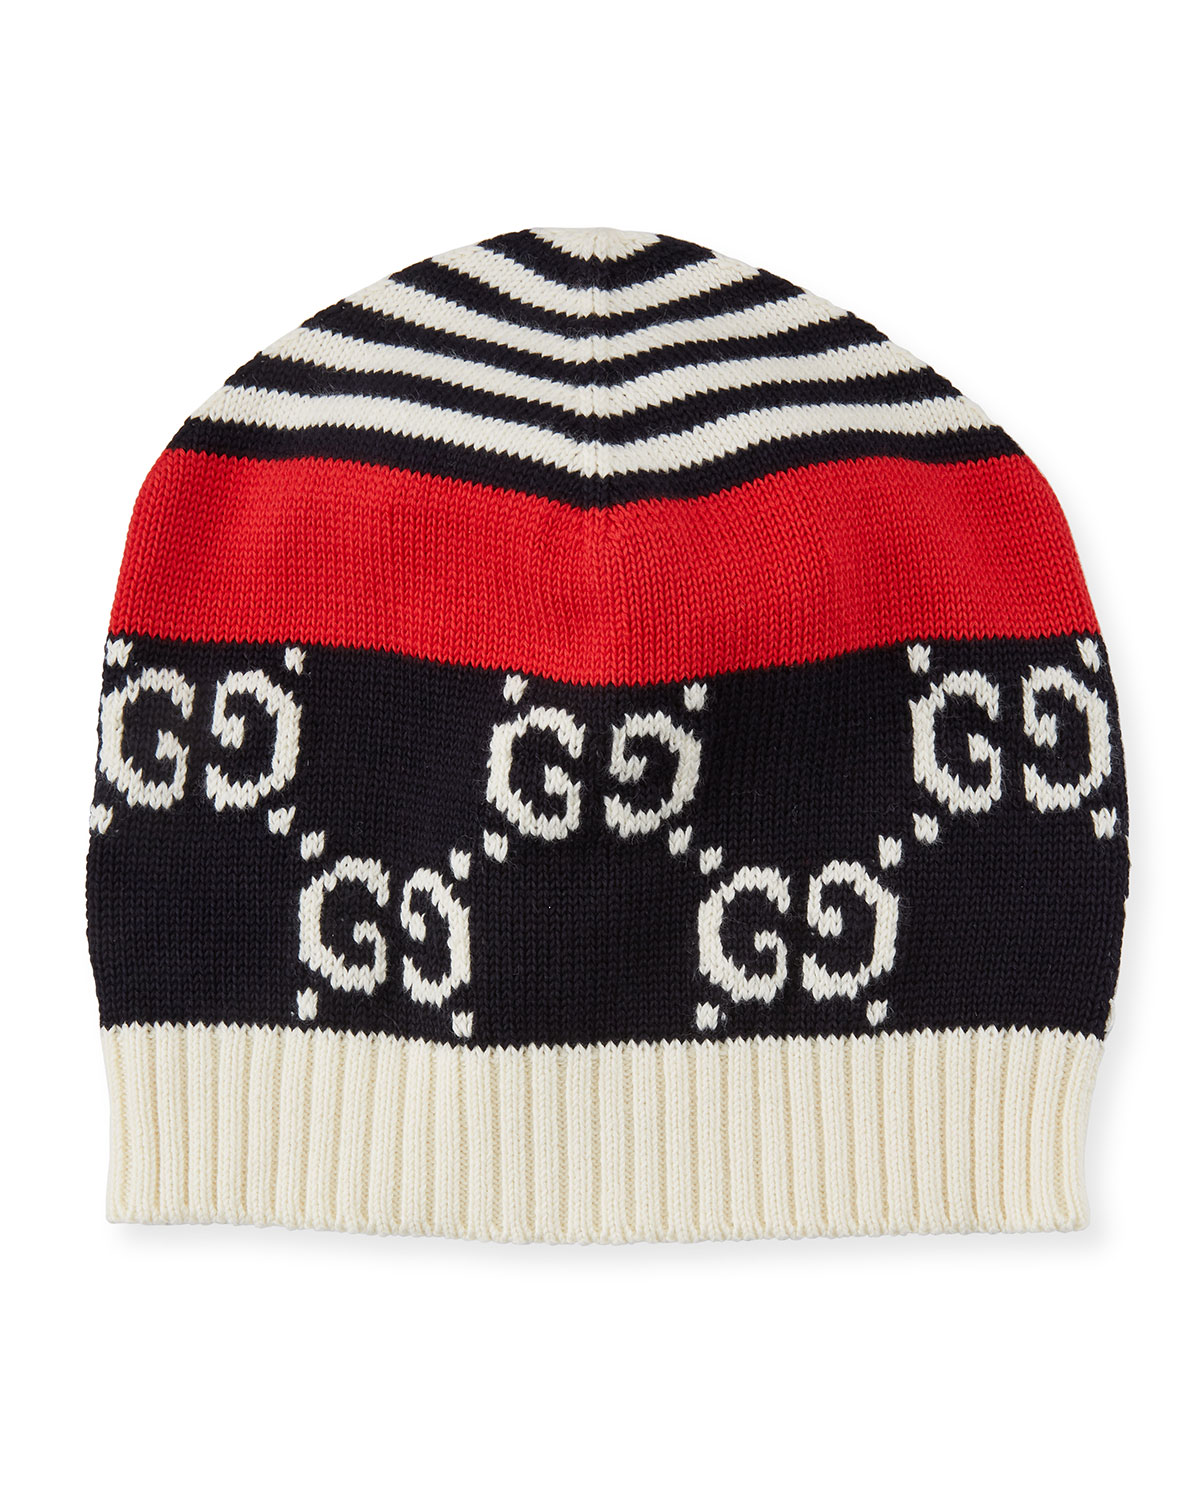 a7a418aa8204a gucci beanies hats for men - Buy best men s gucci beanies hats on Cools.com  Shop